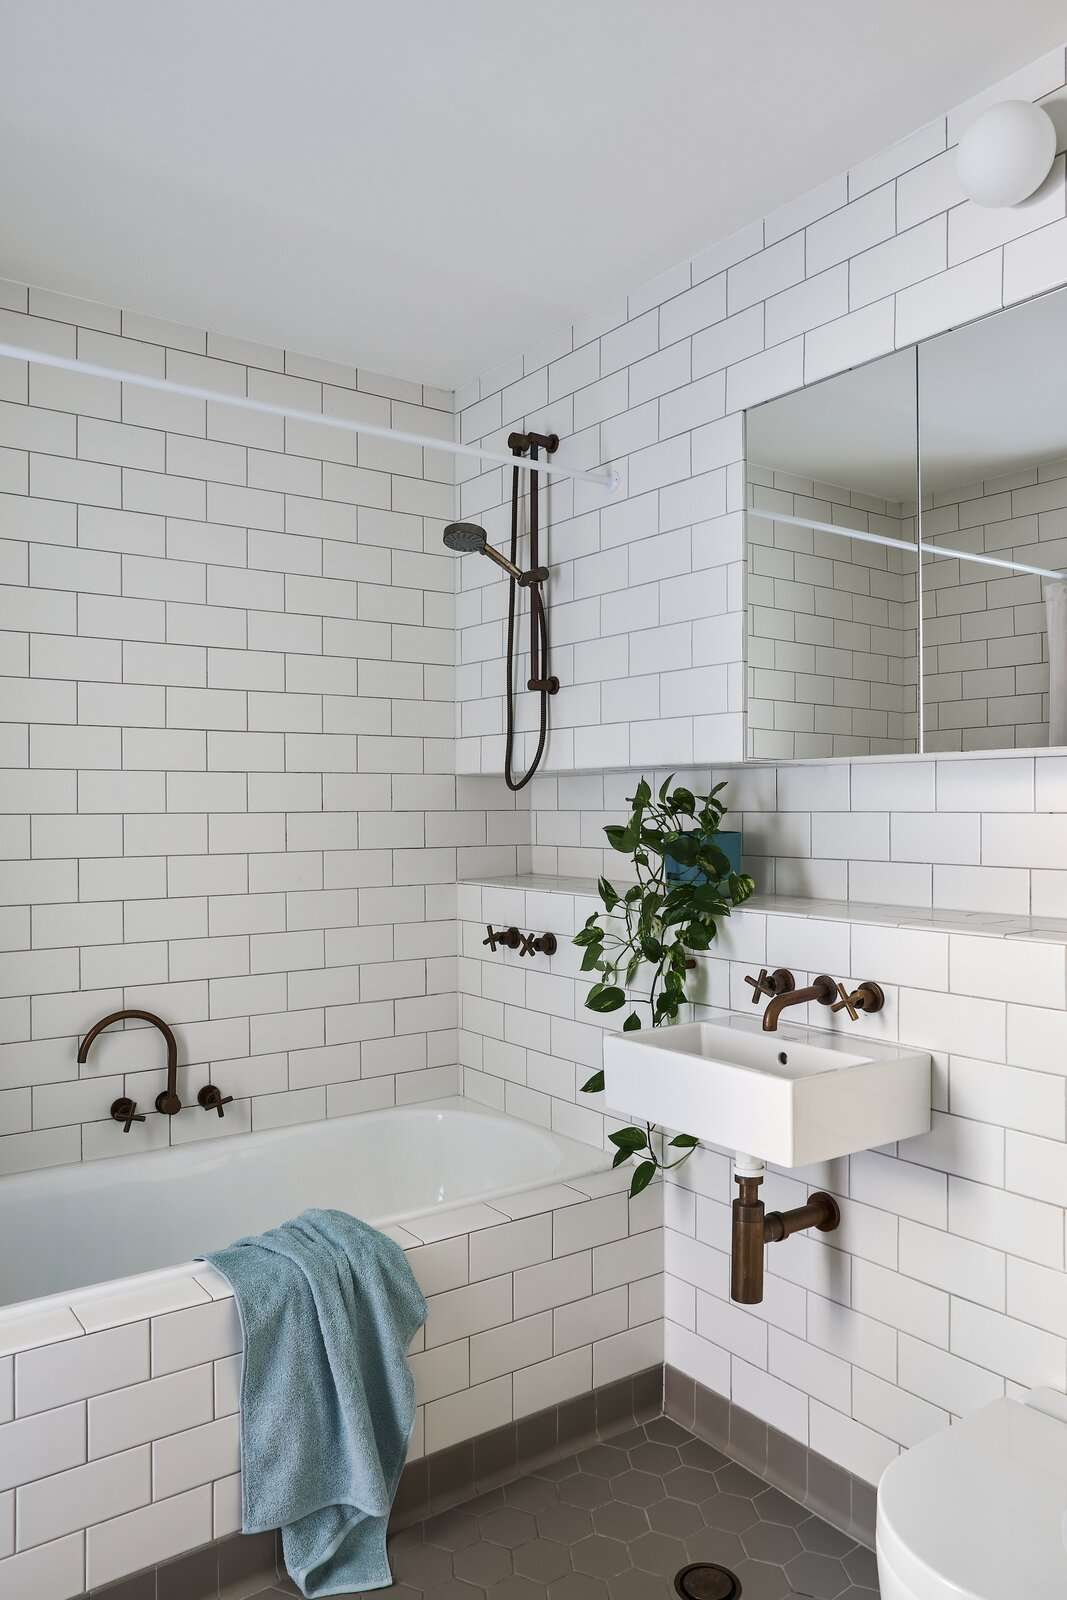 Bathroom of Paddington Courtyard House by Arcke.